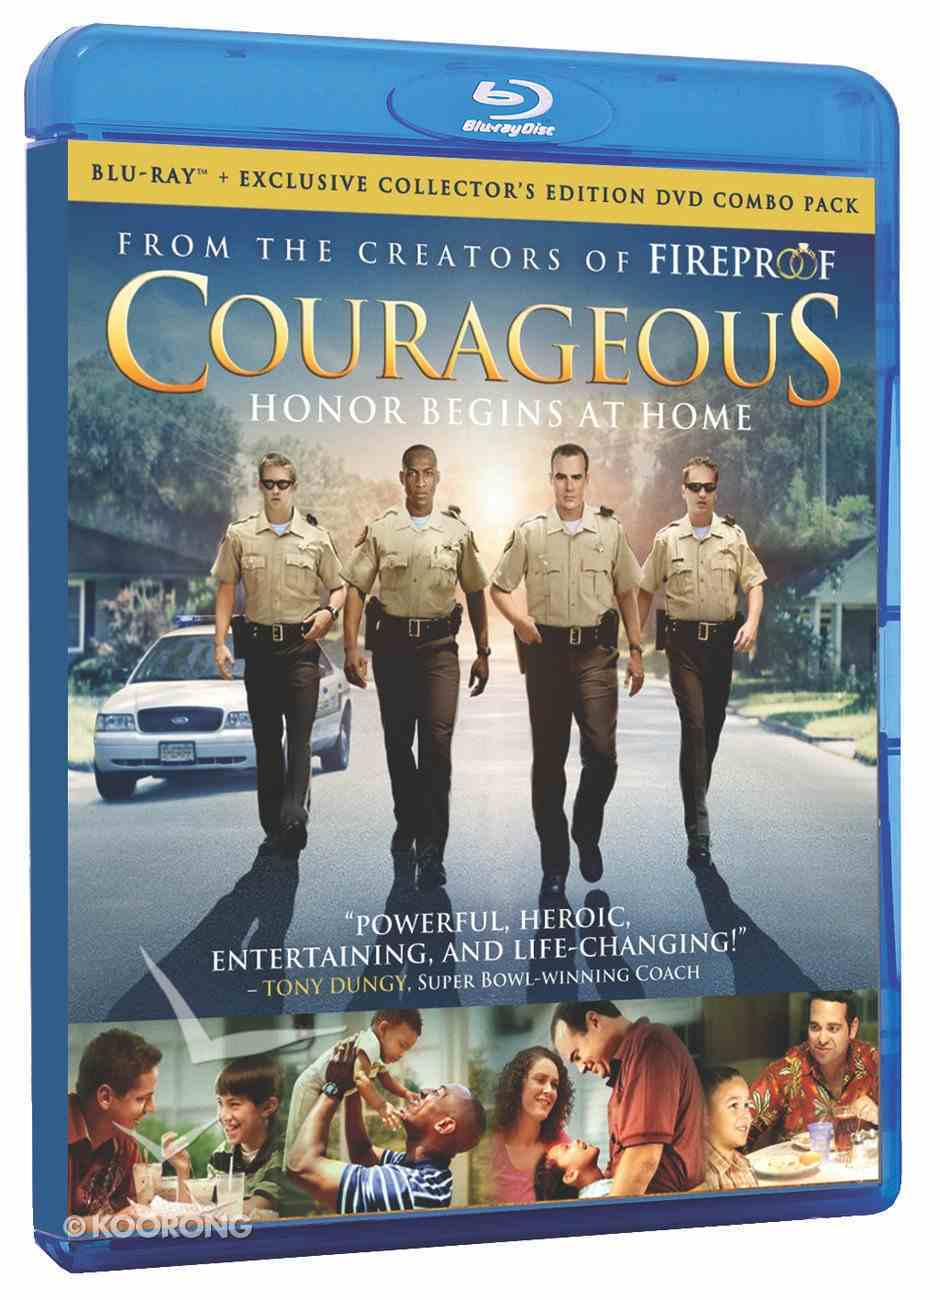 Courageous (Blu-Ray Collector's Edition) (Courageous Series) Blu-ray Disc